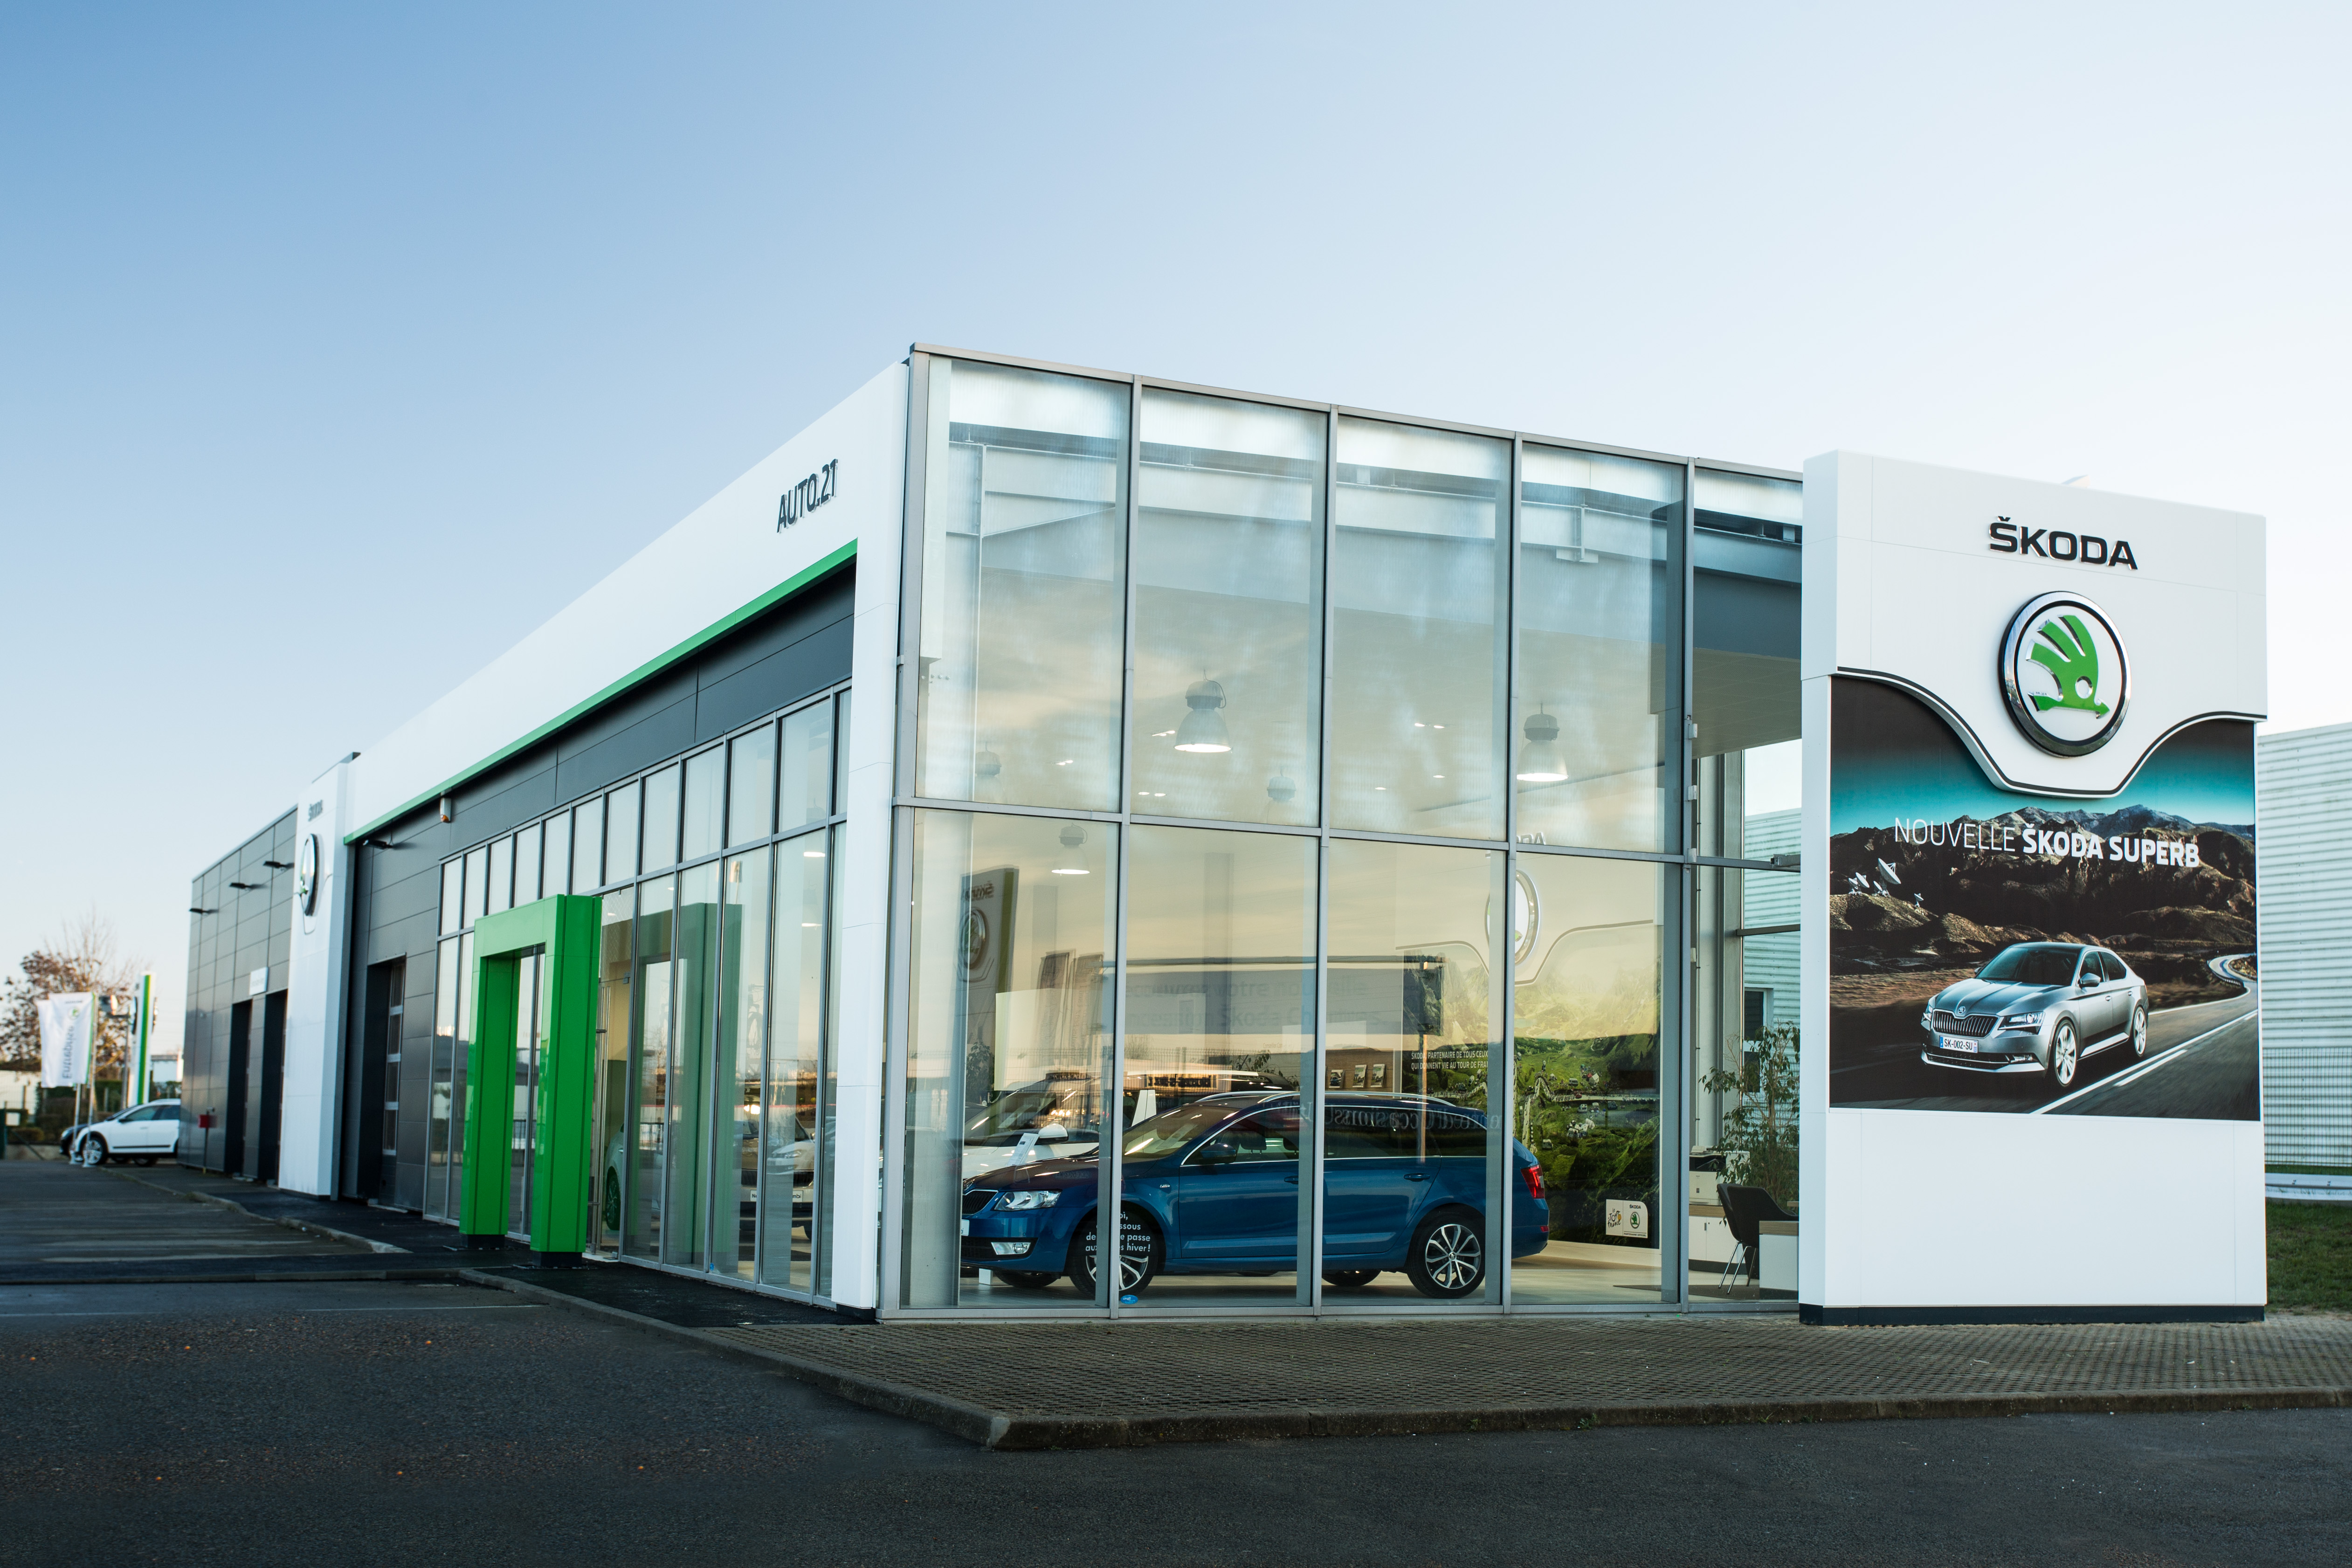 rebranding skoda Škoda auto india will continue to push ahead with its model offensive campaign in 2018 new cicd along with customer initiatives add to overall growth of the brand škoda's 4 year service care program focuses on enhancing the ownership experience towards the brand.